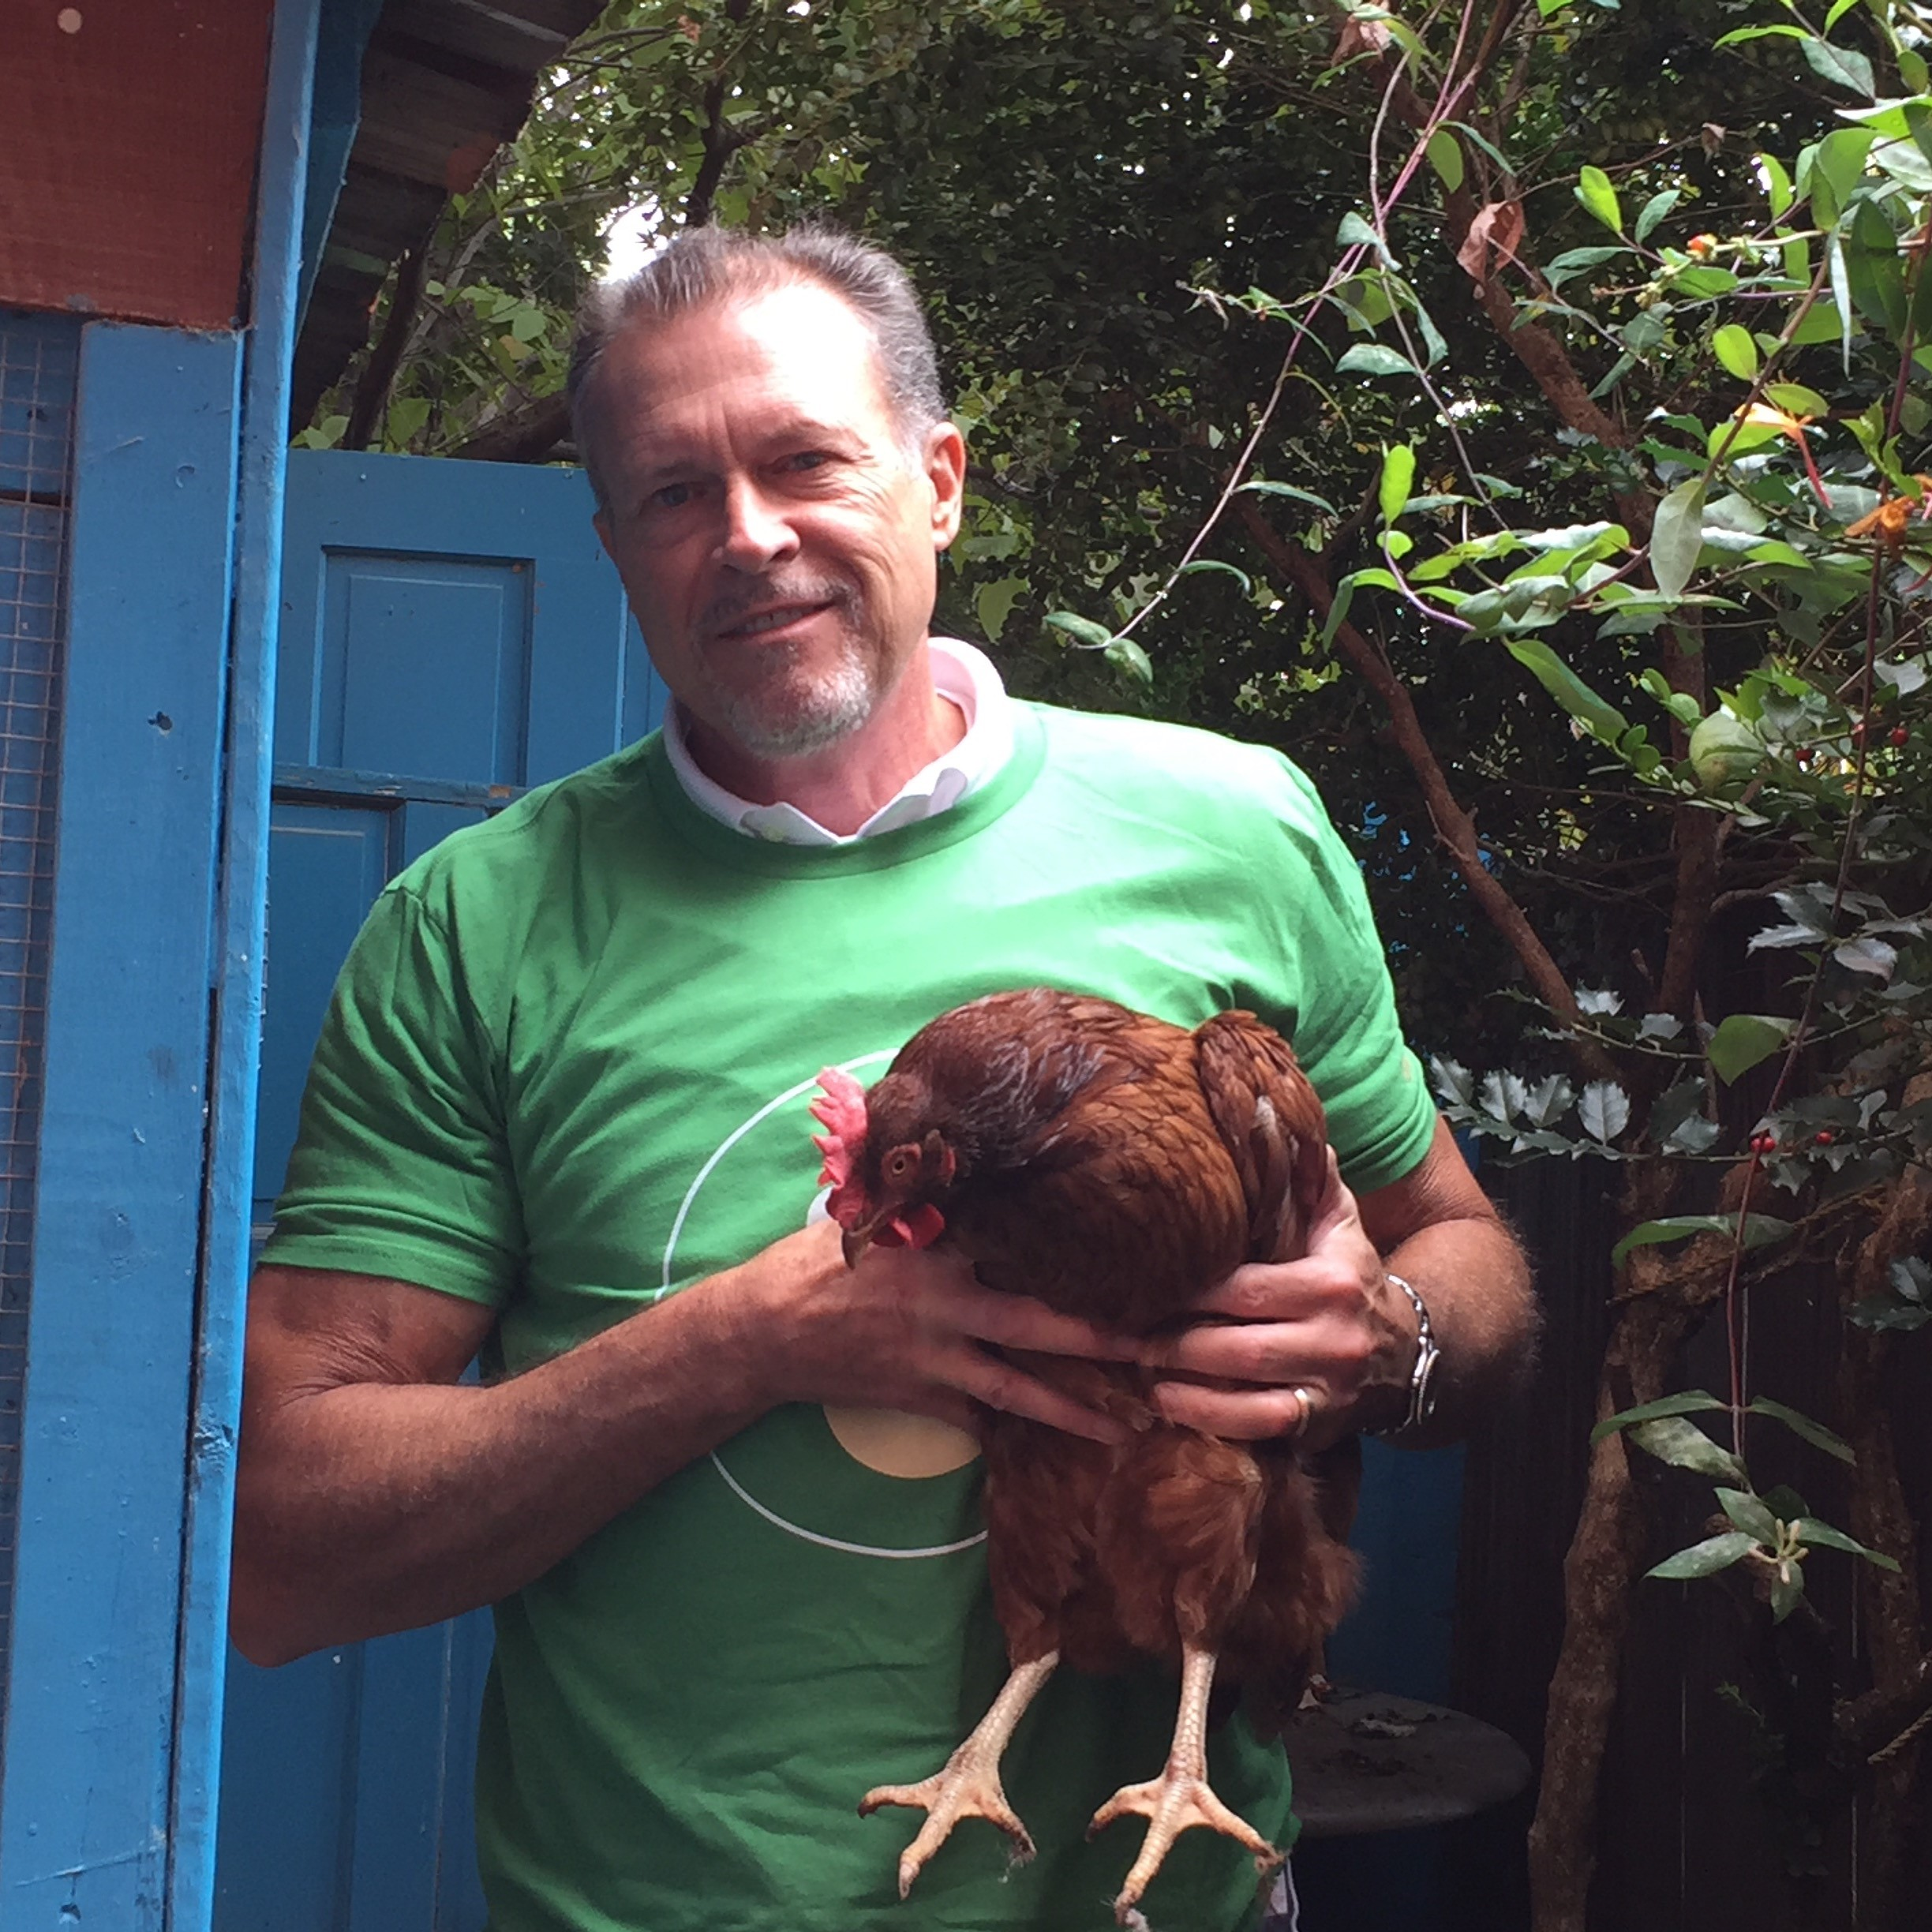 St. Louis Master Gardener Paul Whitsitt practices sustainable gardening in an urban setting. He raises chickens that provide eggs for a coffeehouse he owns in St. Louis' trendy Tower Grove area.